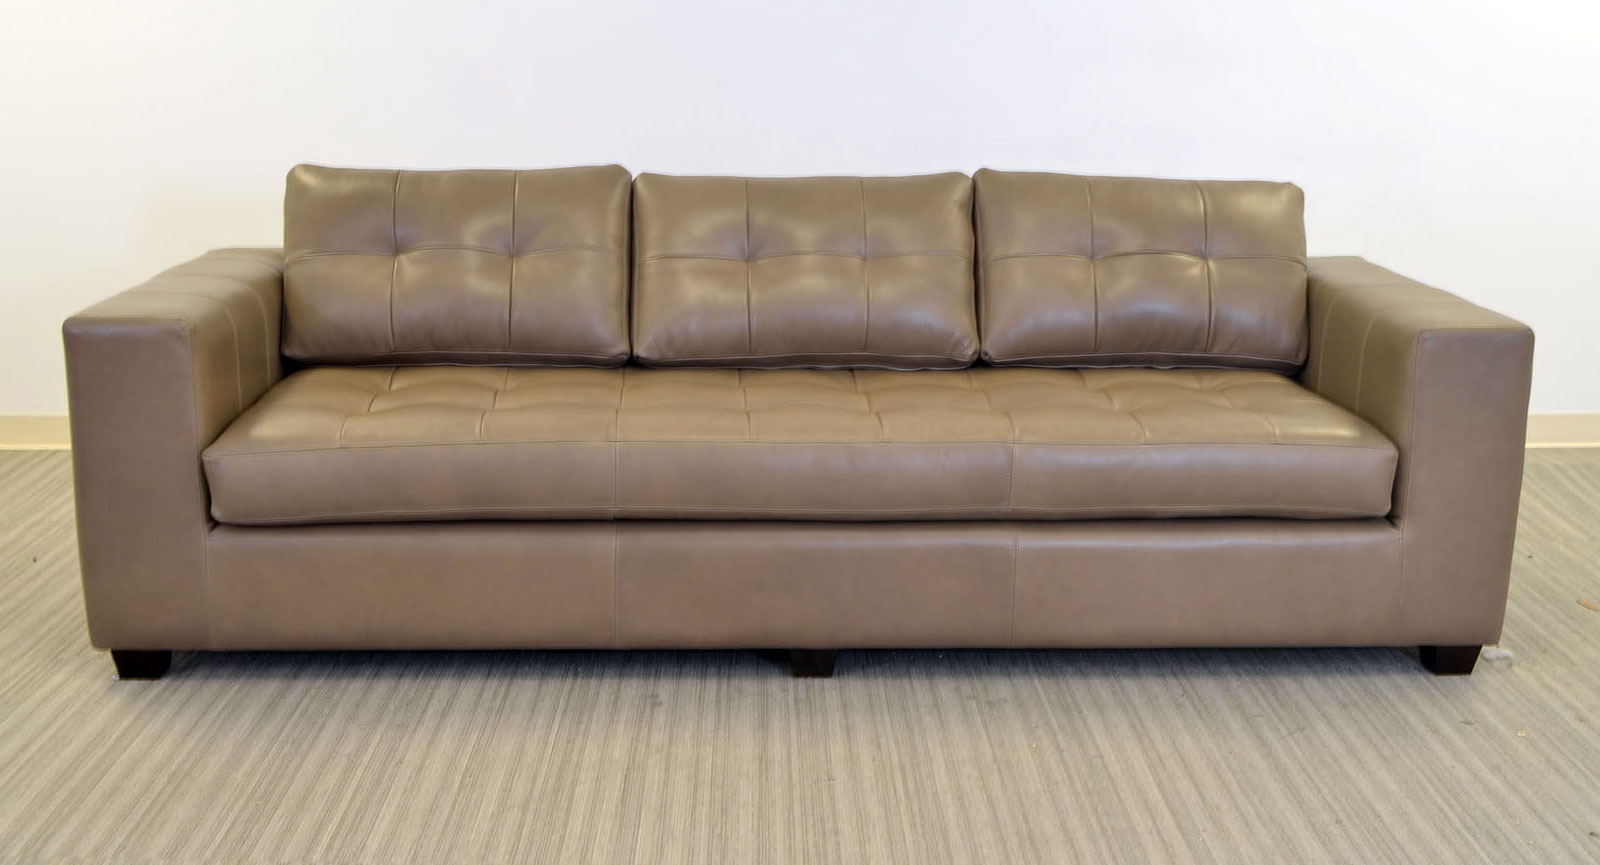 Gev One Cushion Sofa